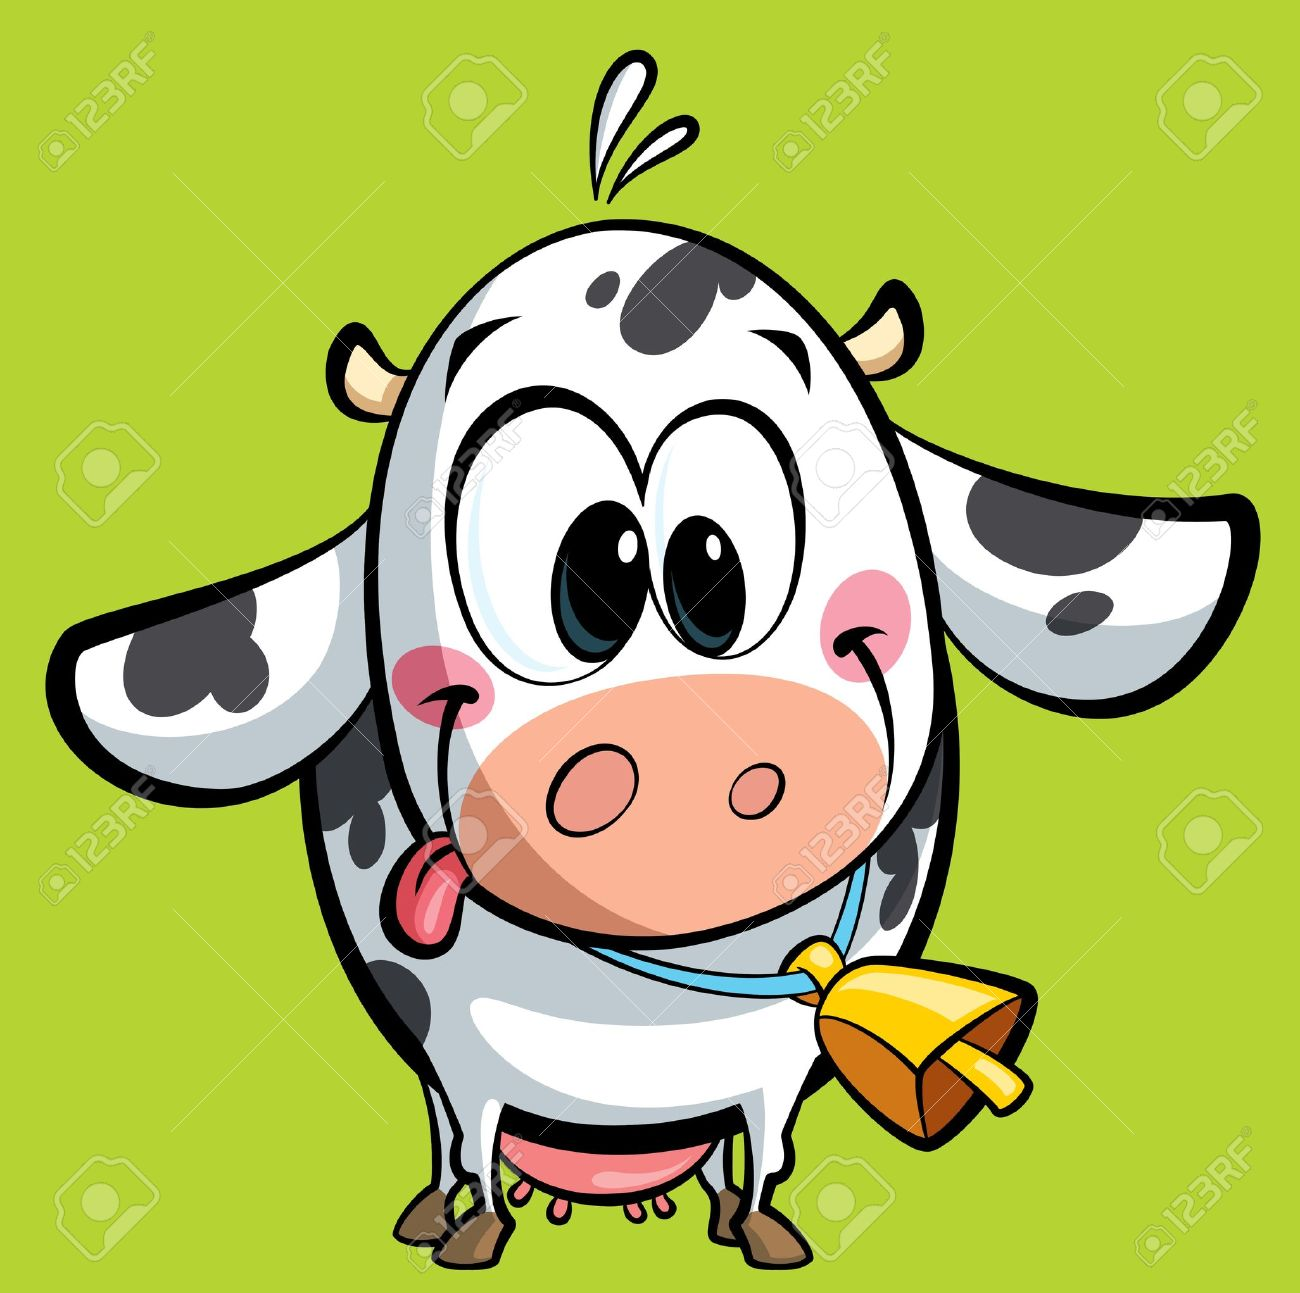 cartoon baby cow with a big cowbell having its tongue out of